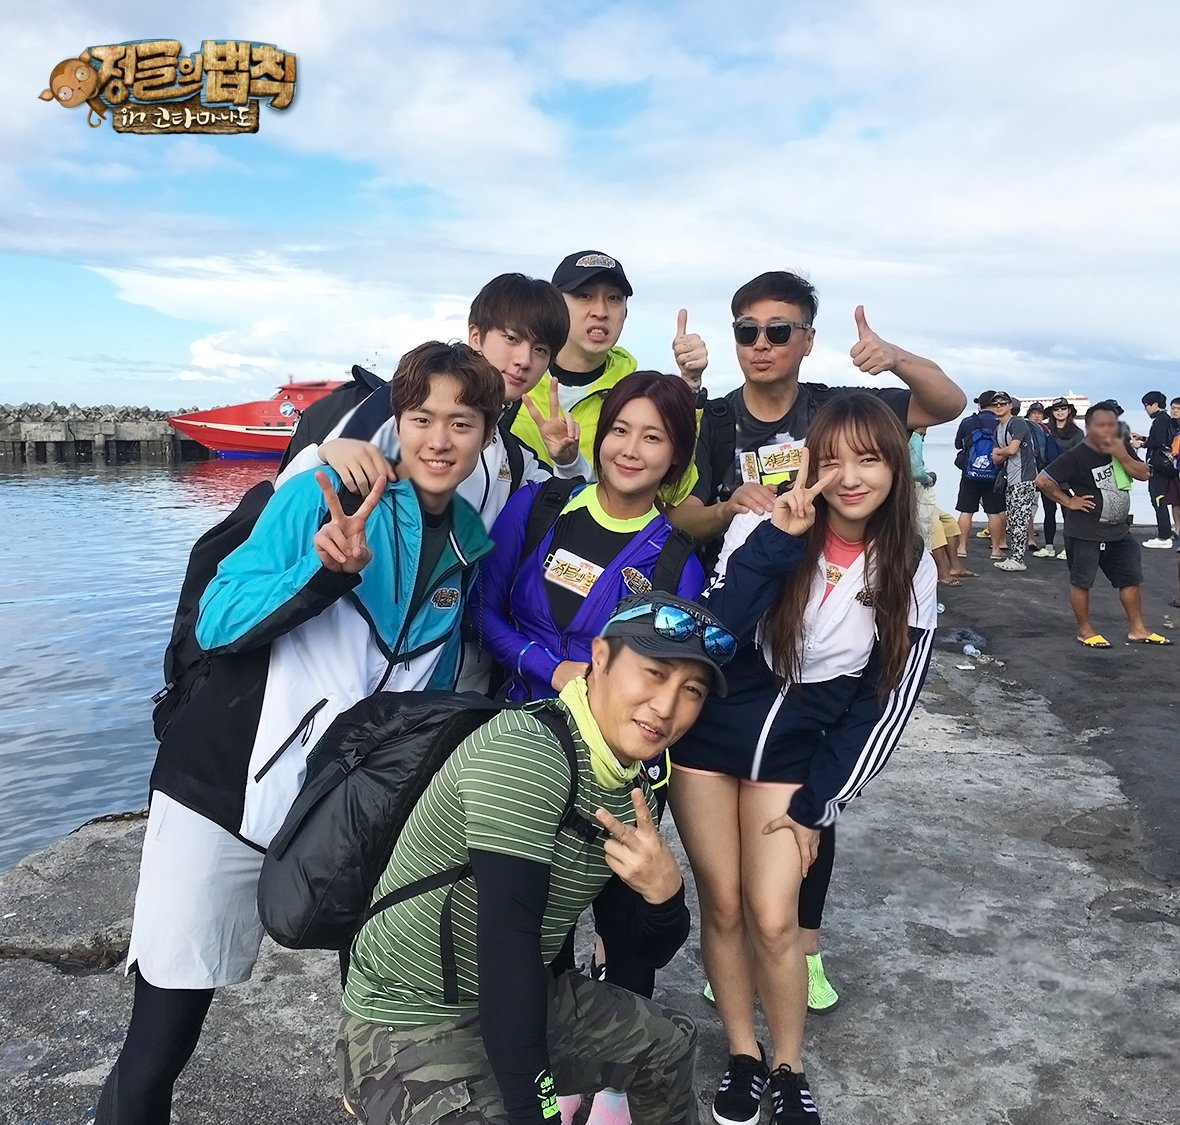 VideoLink/Engsub] BTS' Jin on Law Of The Jungle in Kota